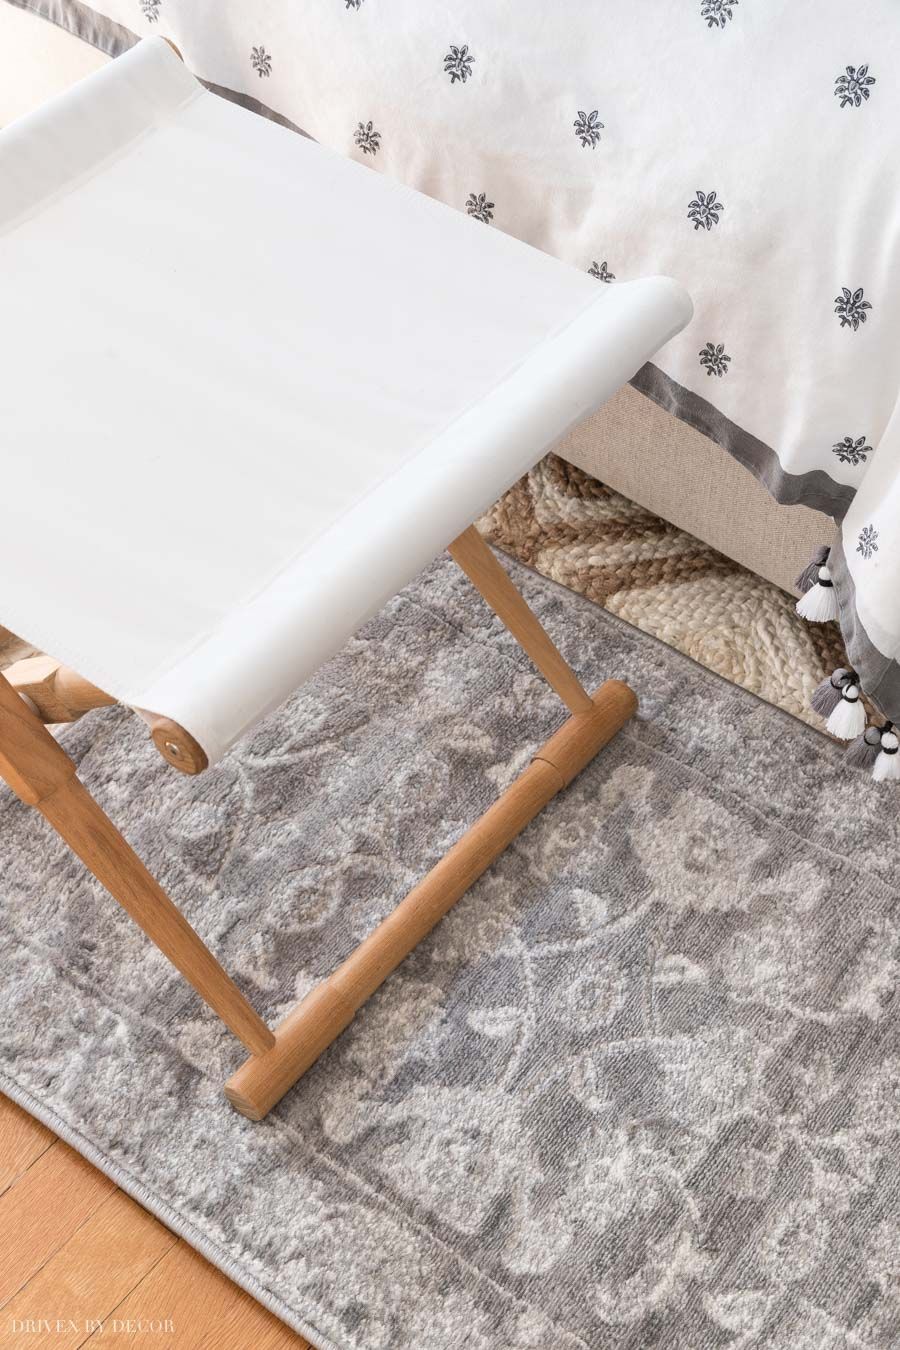 Gorgeous patterned gray rug that's soft and highly cleanable!